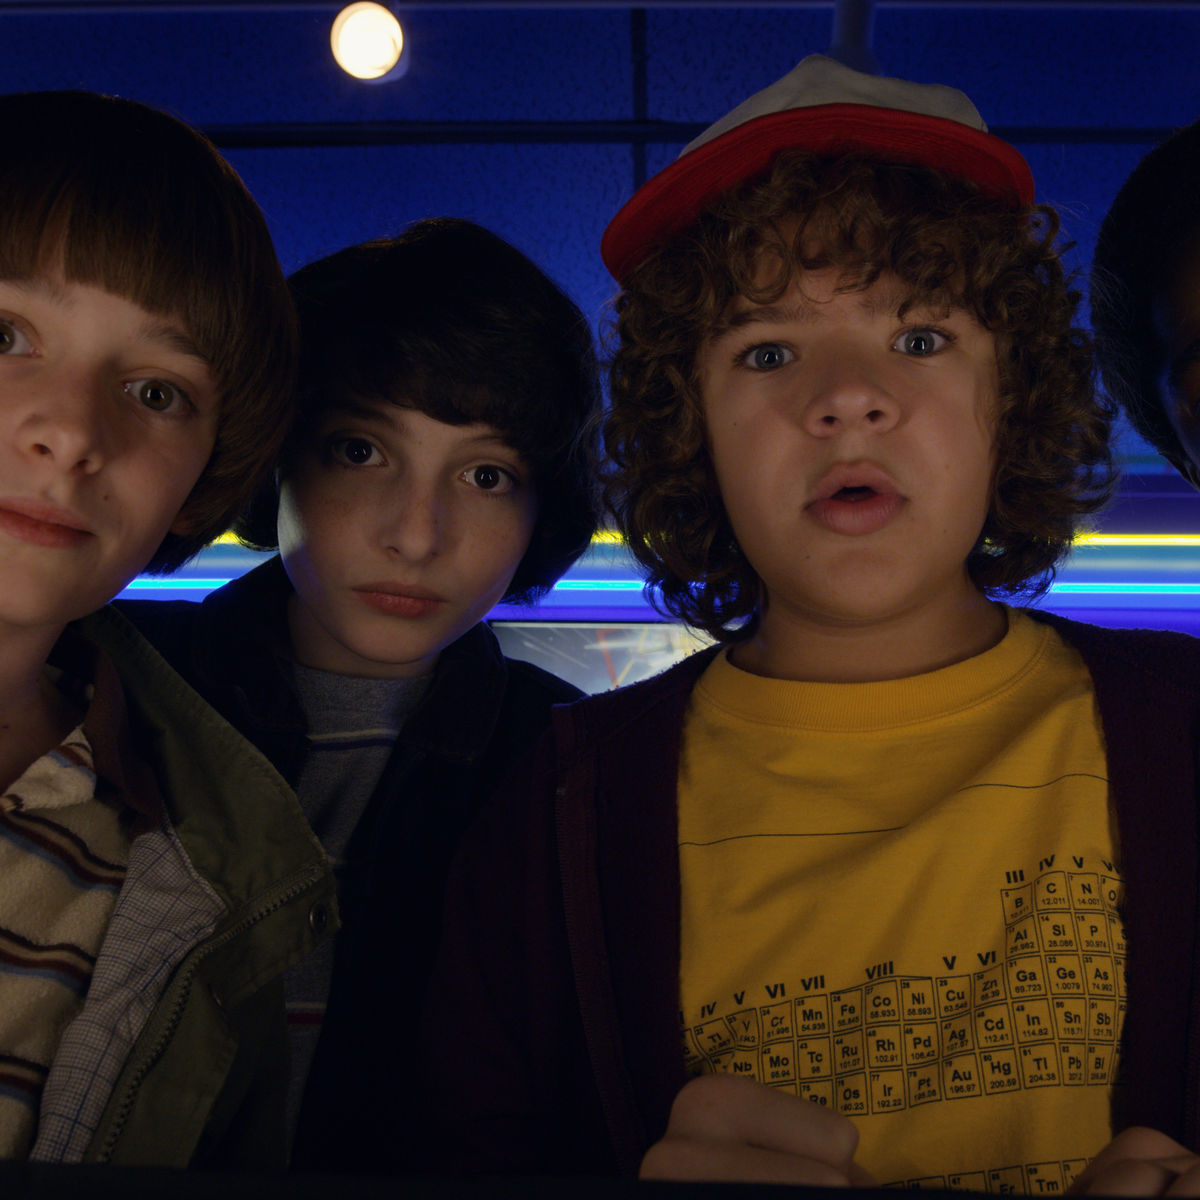 Stranger Things 3 Premiere Date Announcement Teaser and Poster